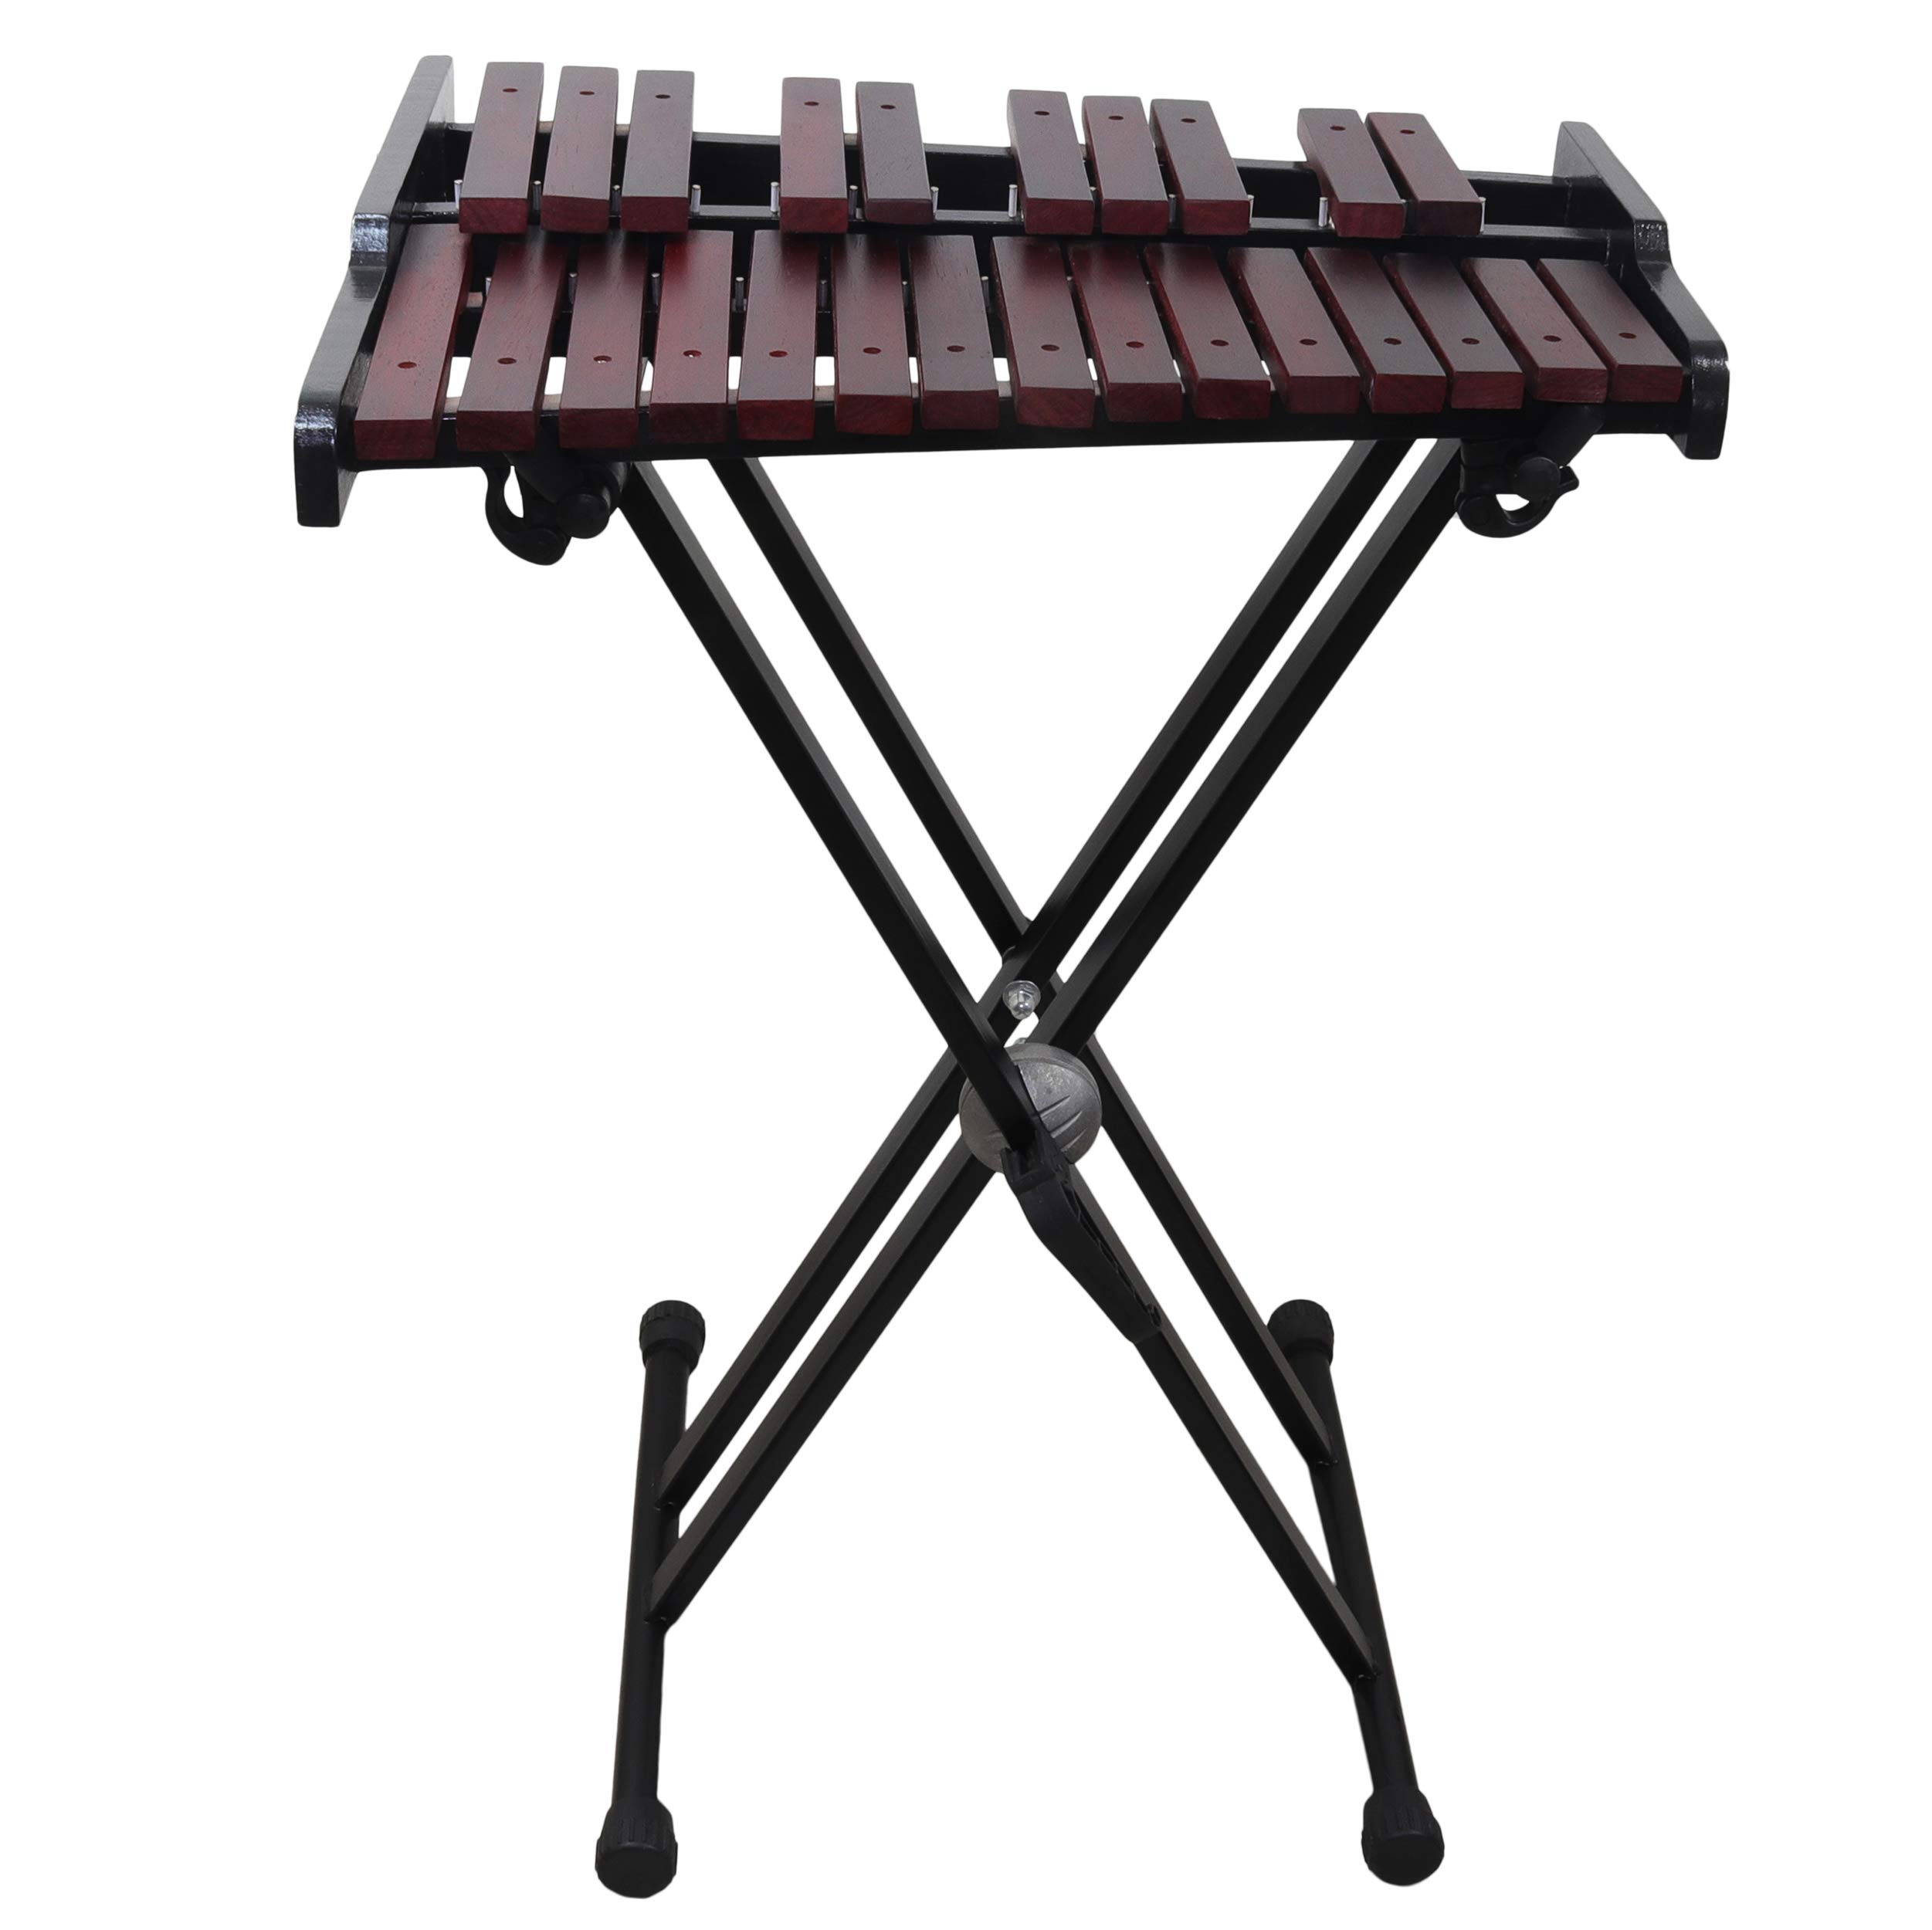 Wooden 25-note Xylophone with stand, 4 Mallets, Carrying bag